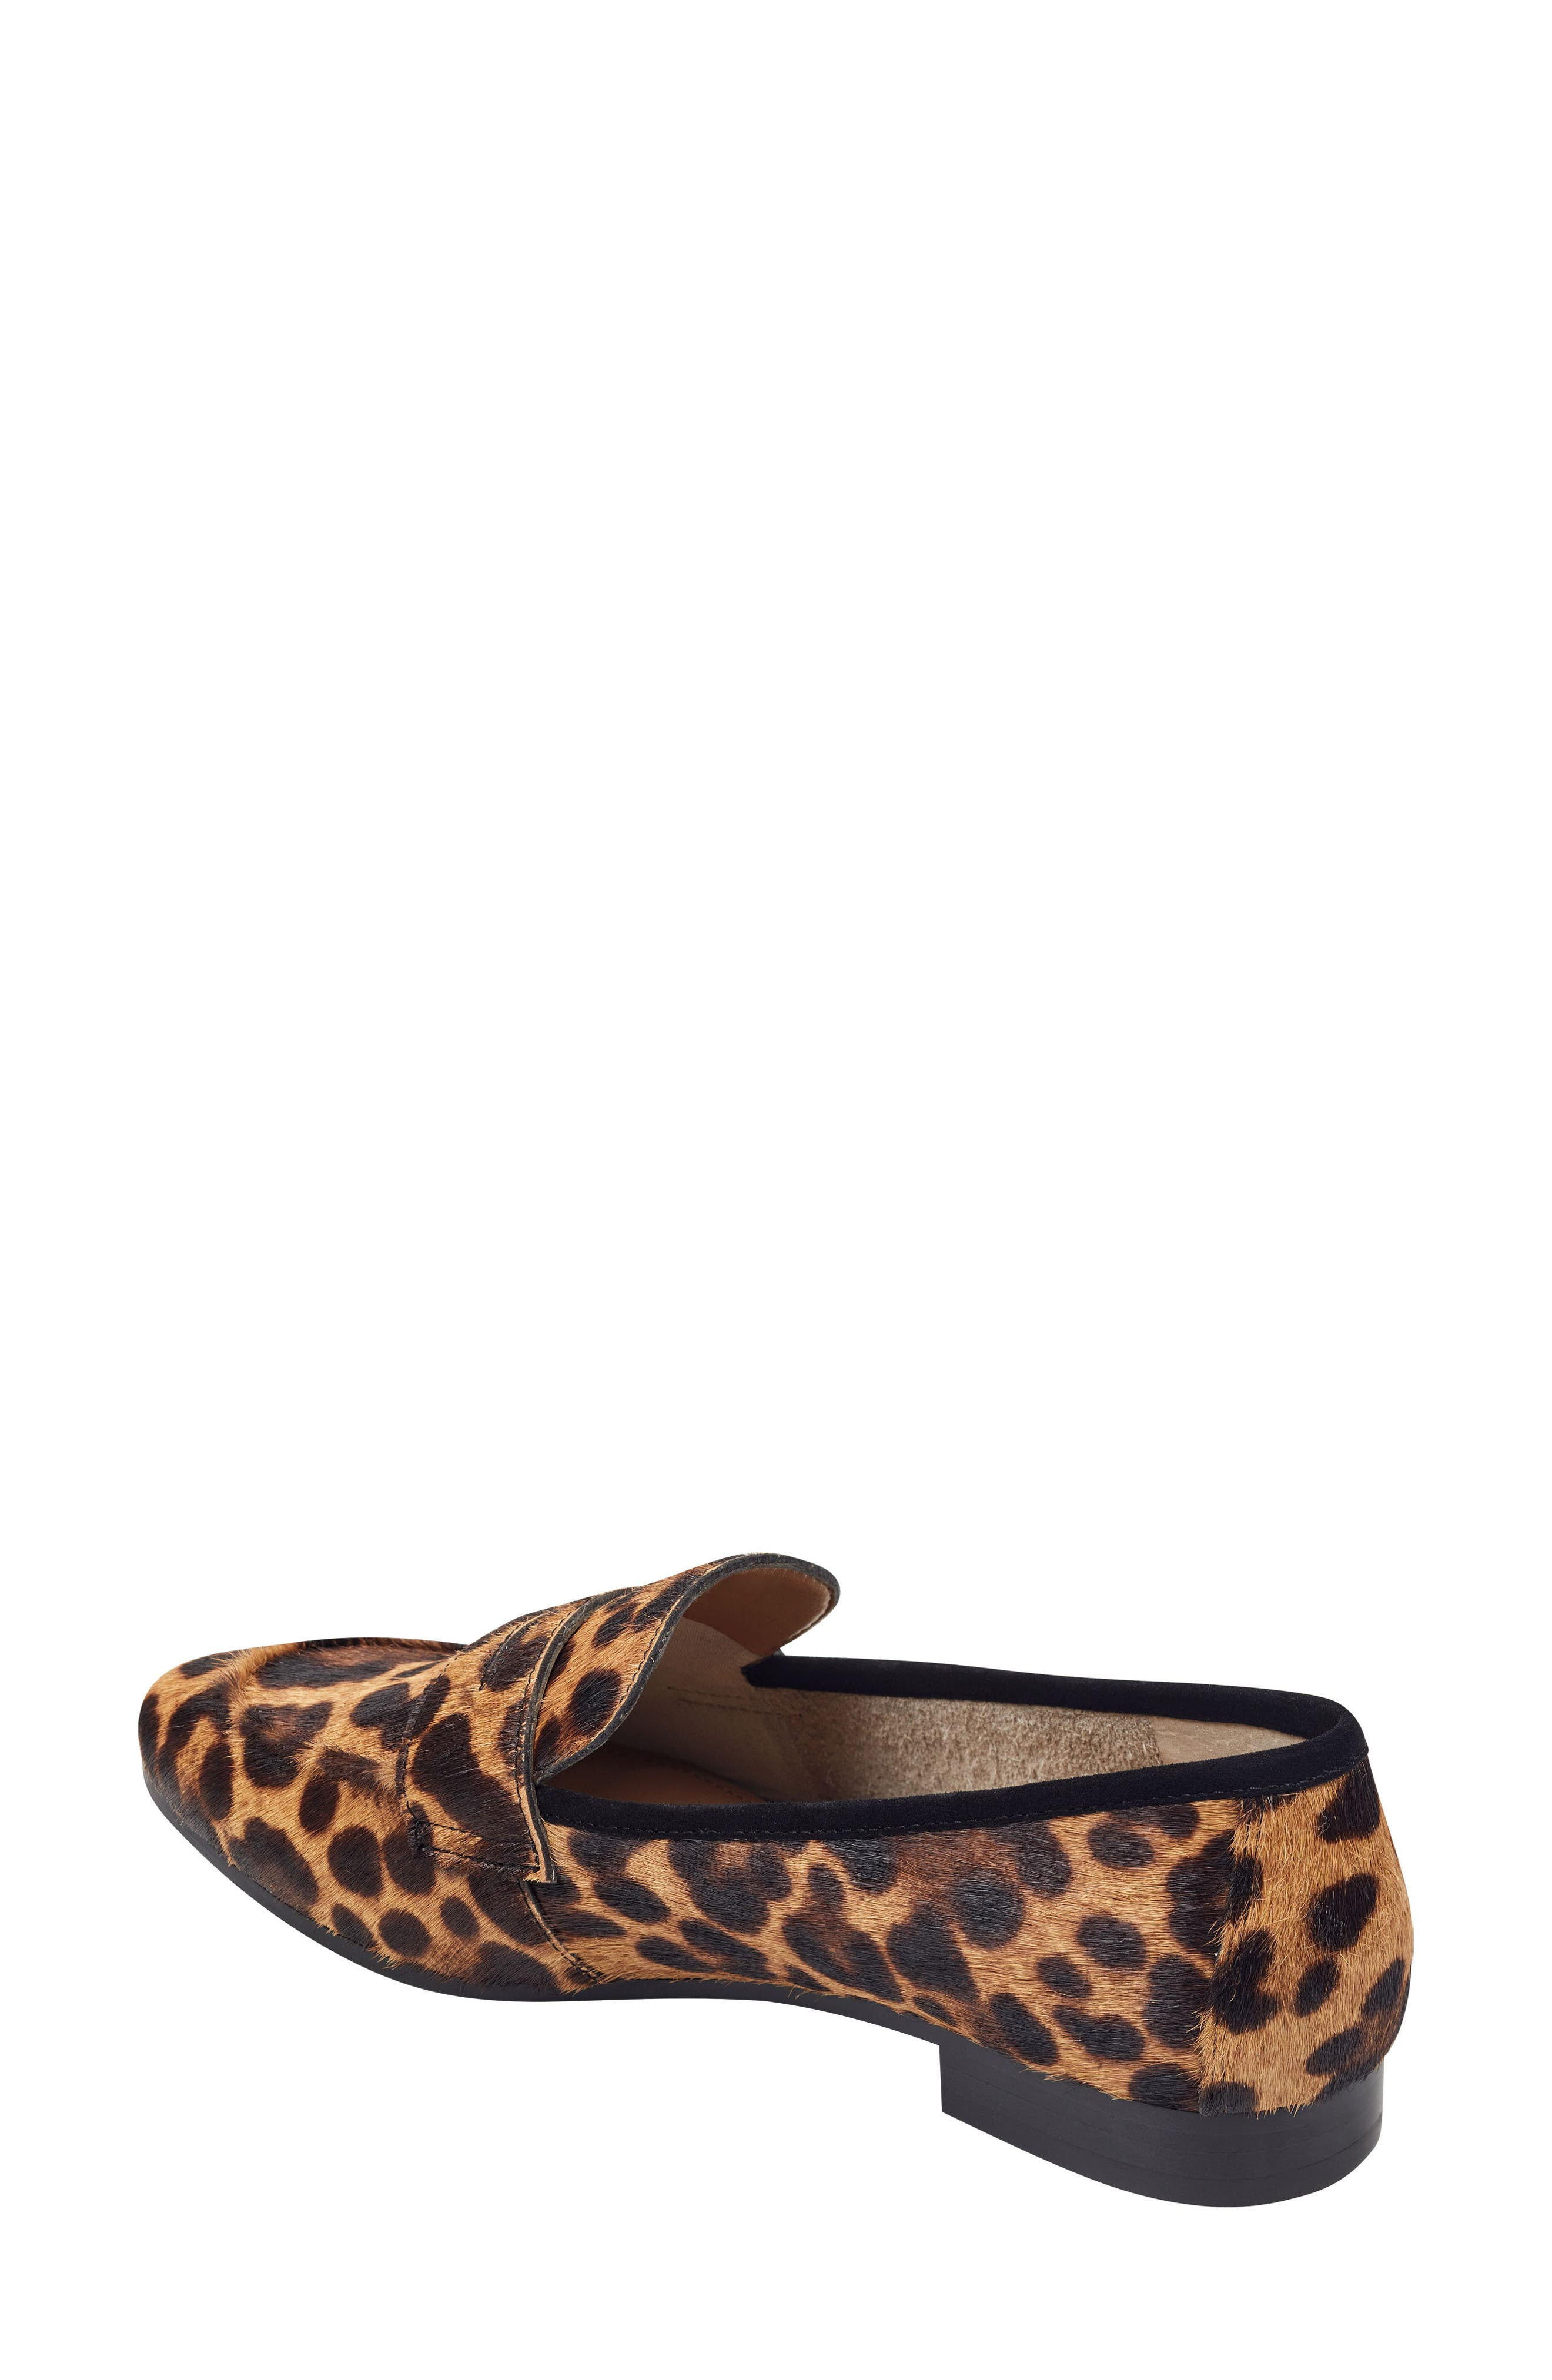 ,                             Chang Penny Loafer,                             Alternate thumbnail 2, color,                             LEOPARD PRINT CALF HAIR